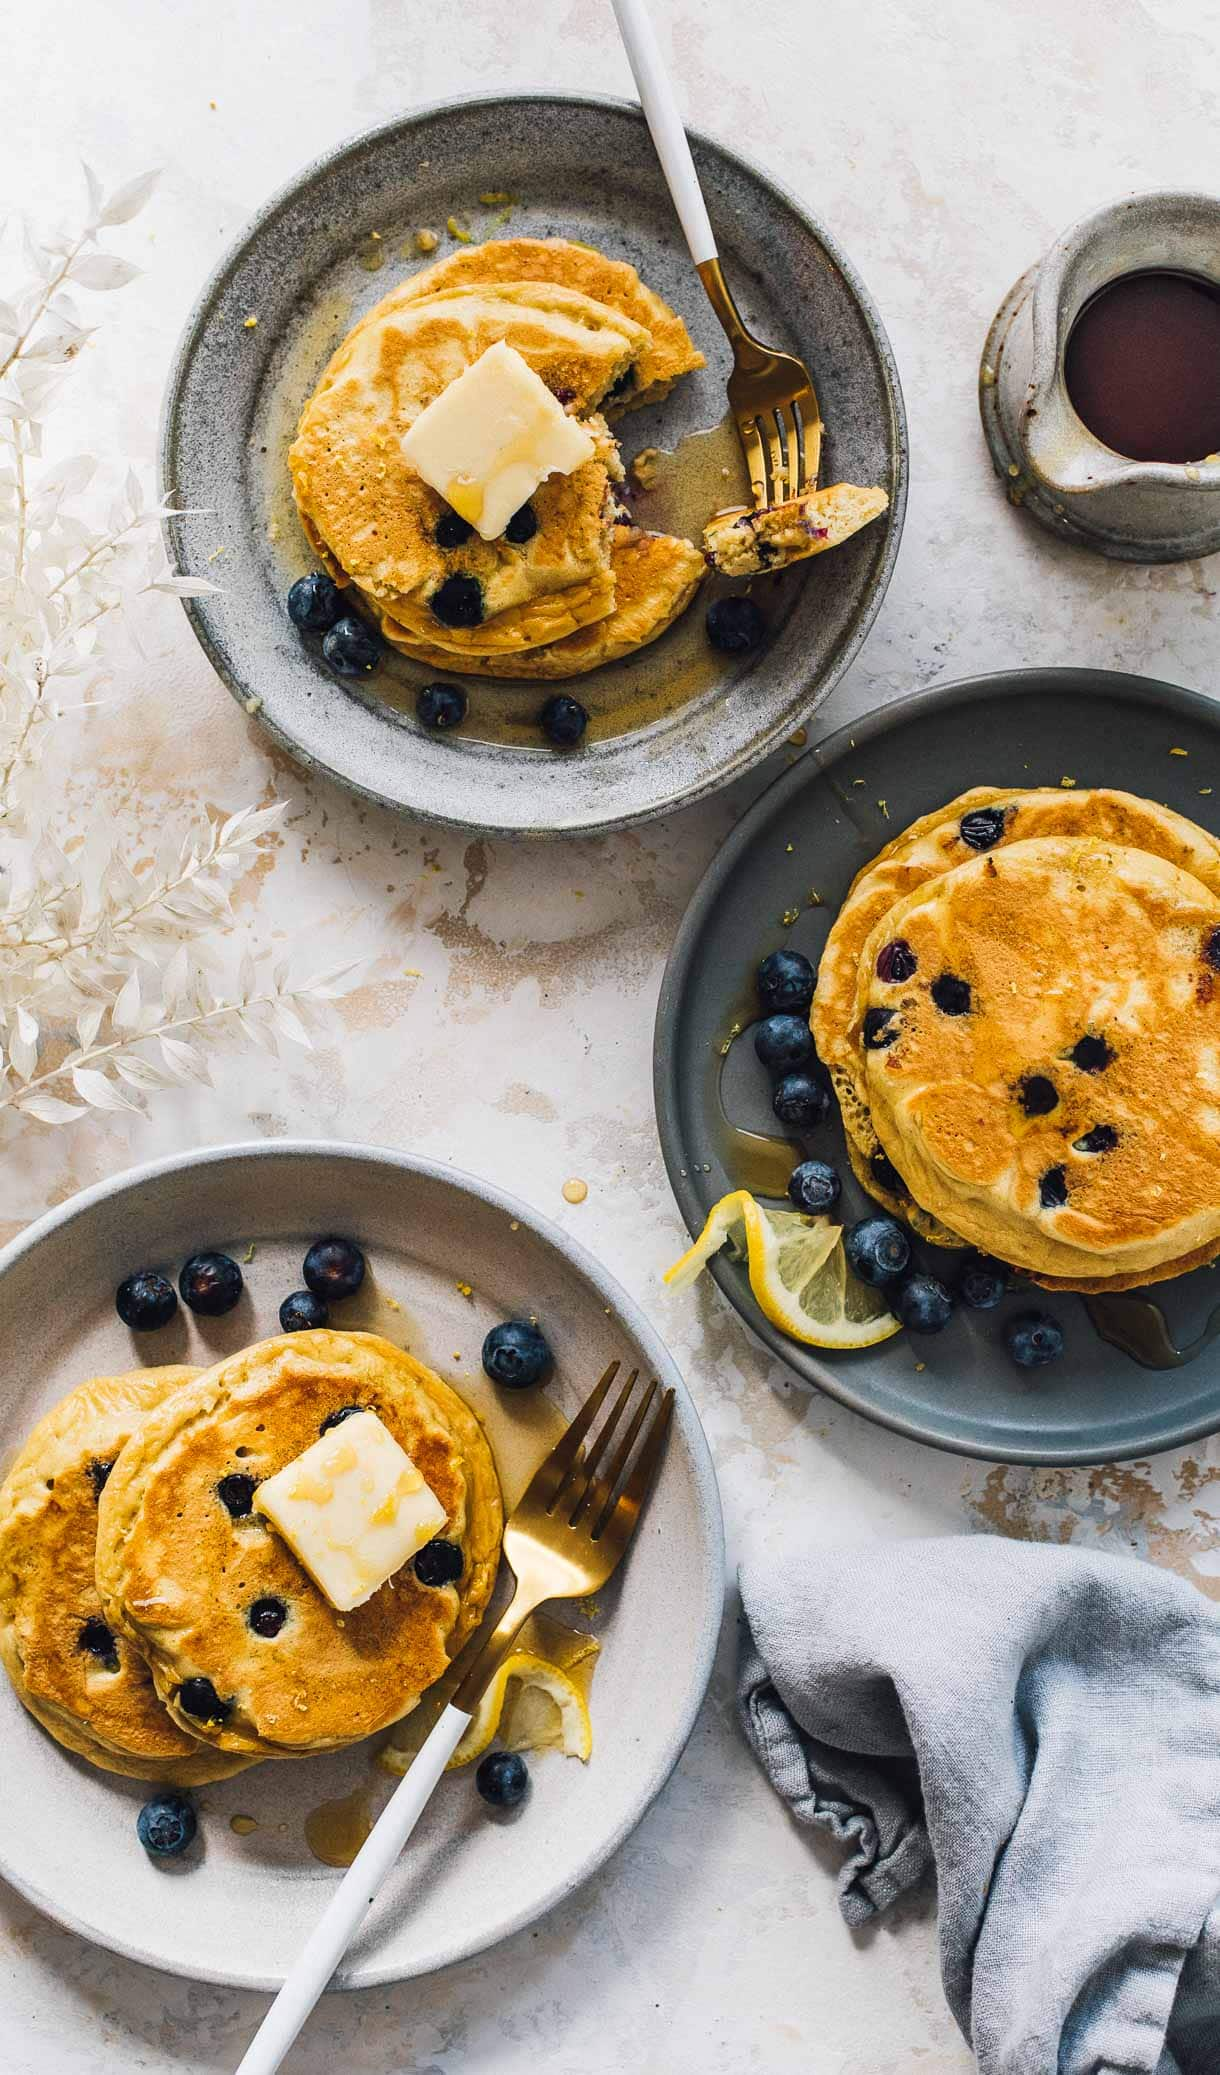 three plates of blueberry pancakes with maple syrup